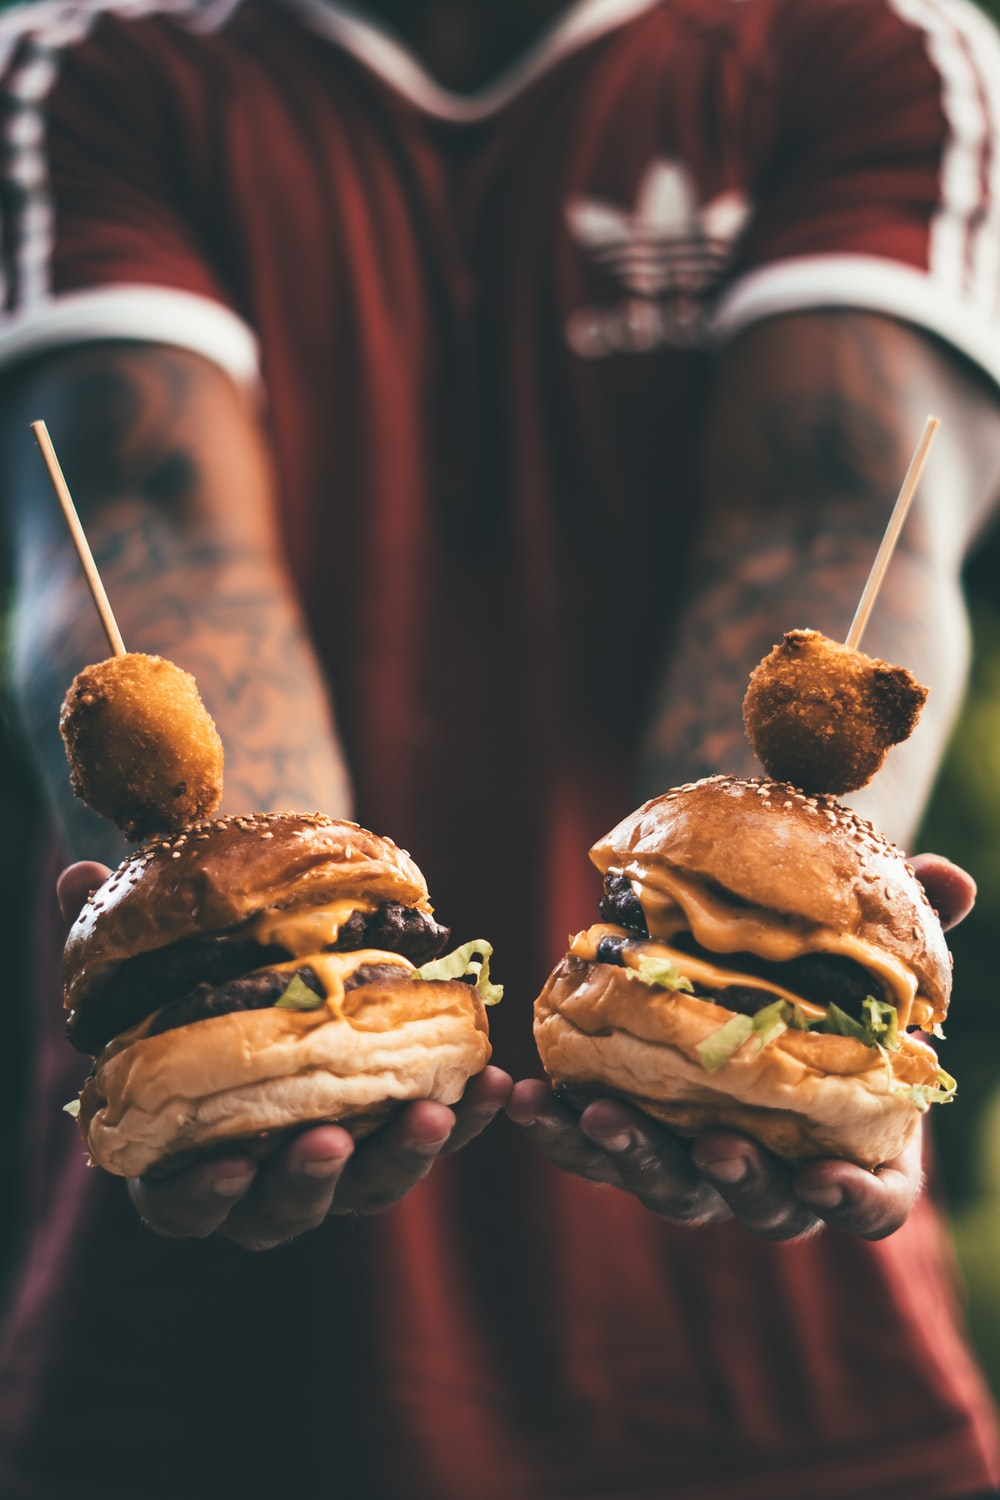 person holding two cheese hamburgers